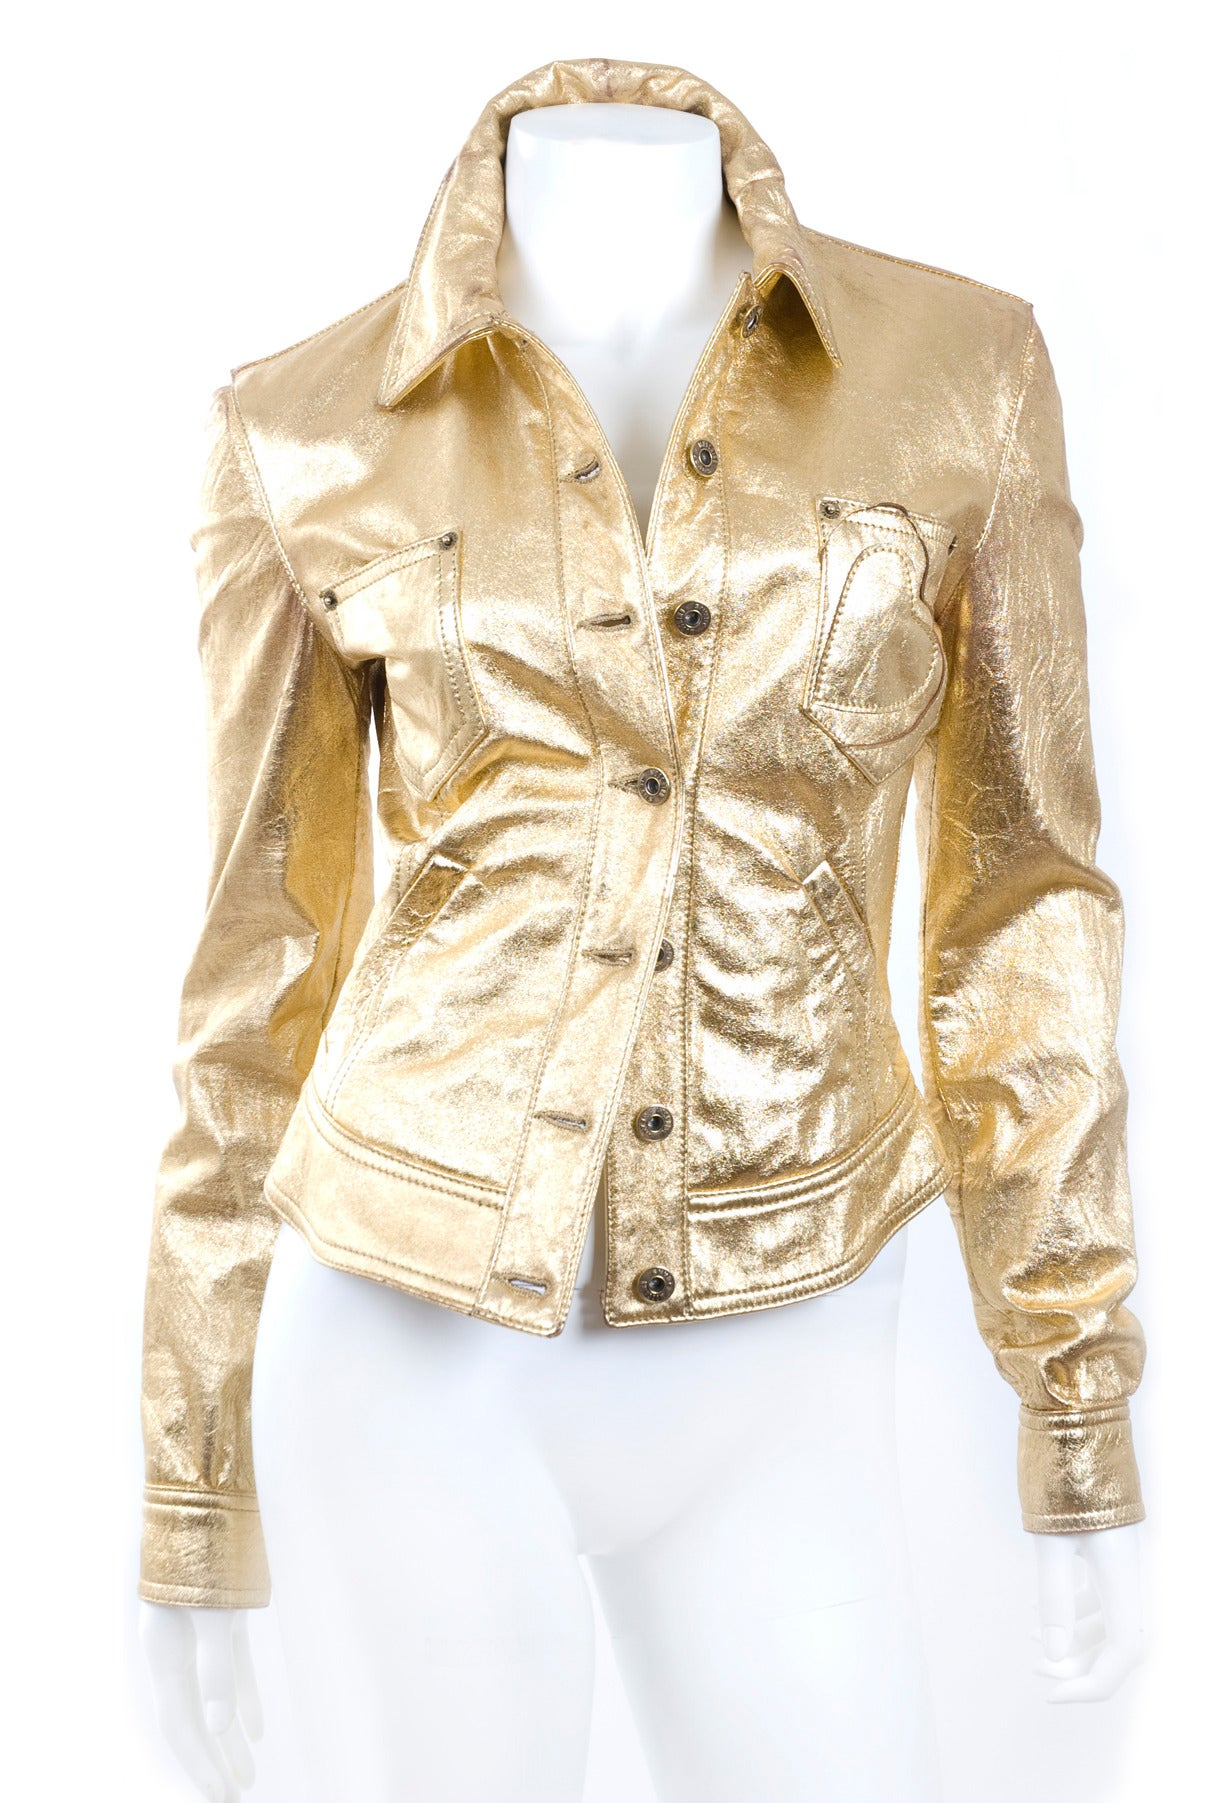 80's  Moschino Jeans Gold Leather Jacket 3